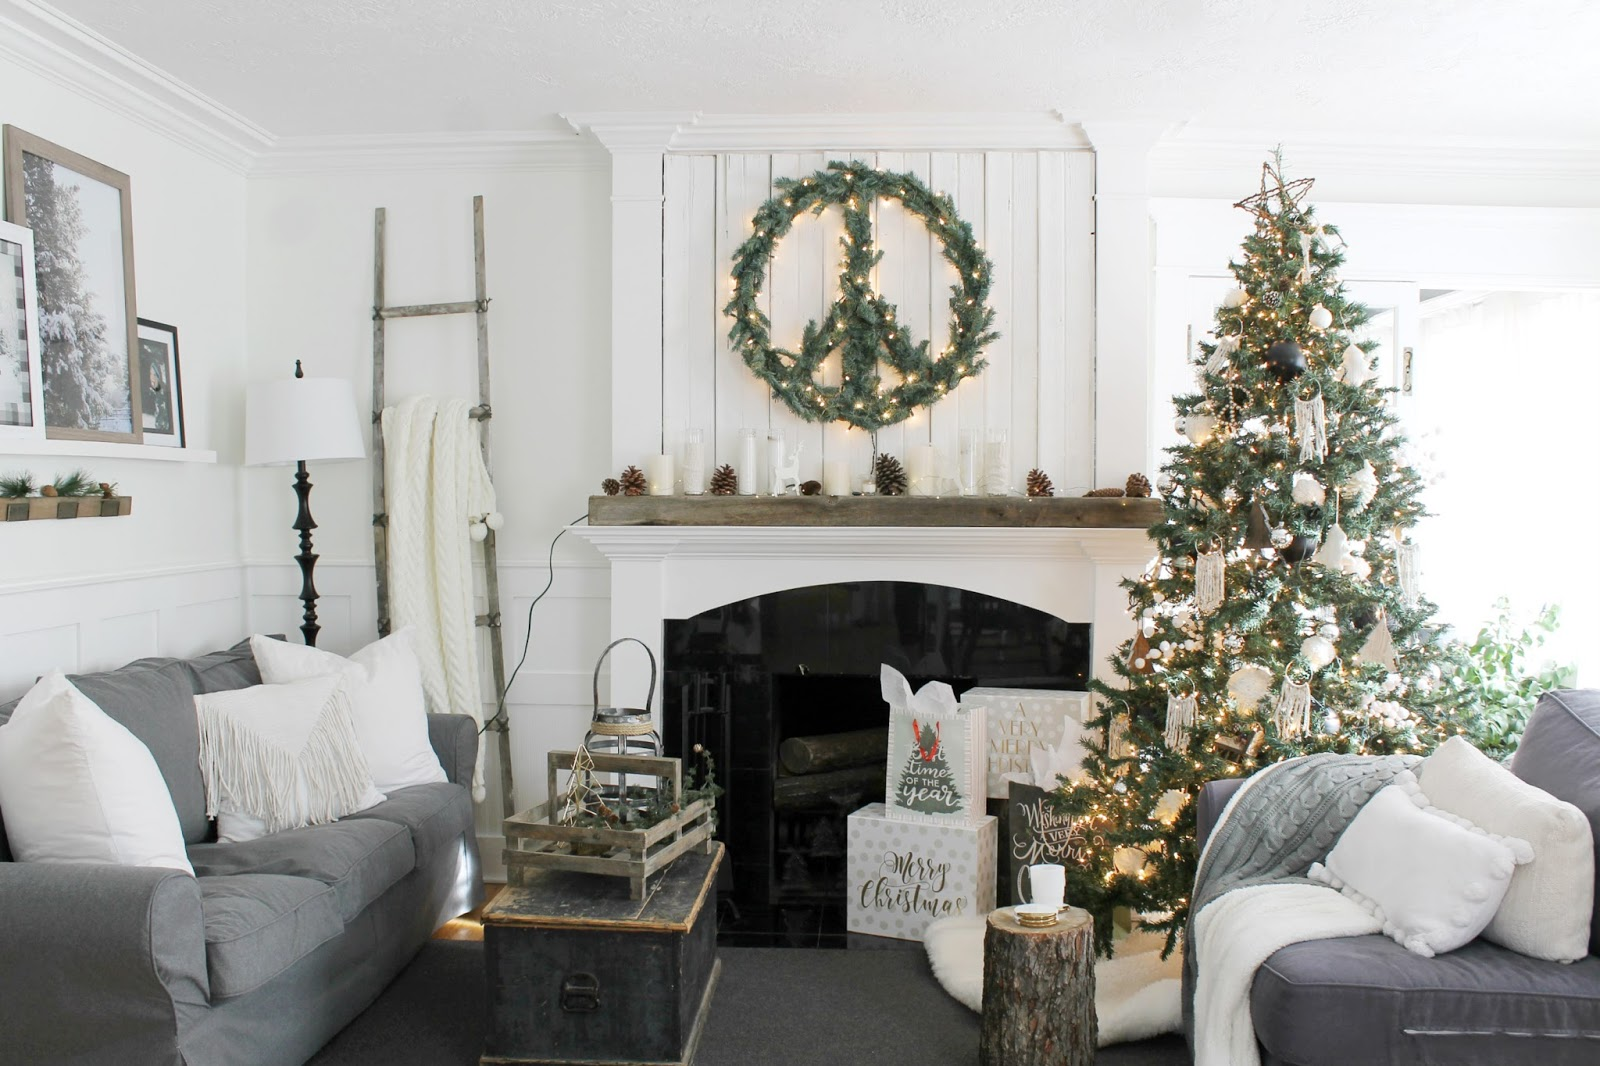 Cozy Christmas Home Tour 2017 - The Wicker House